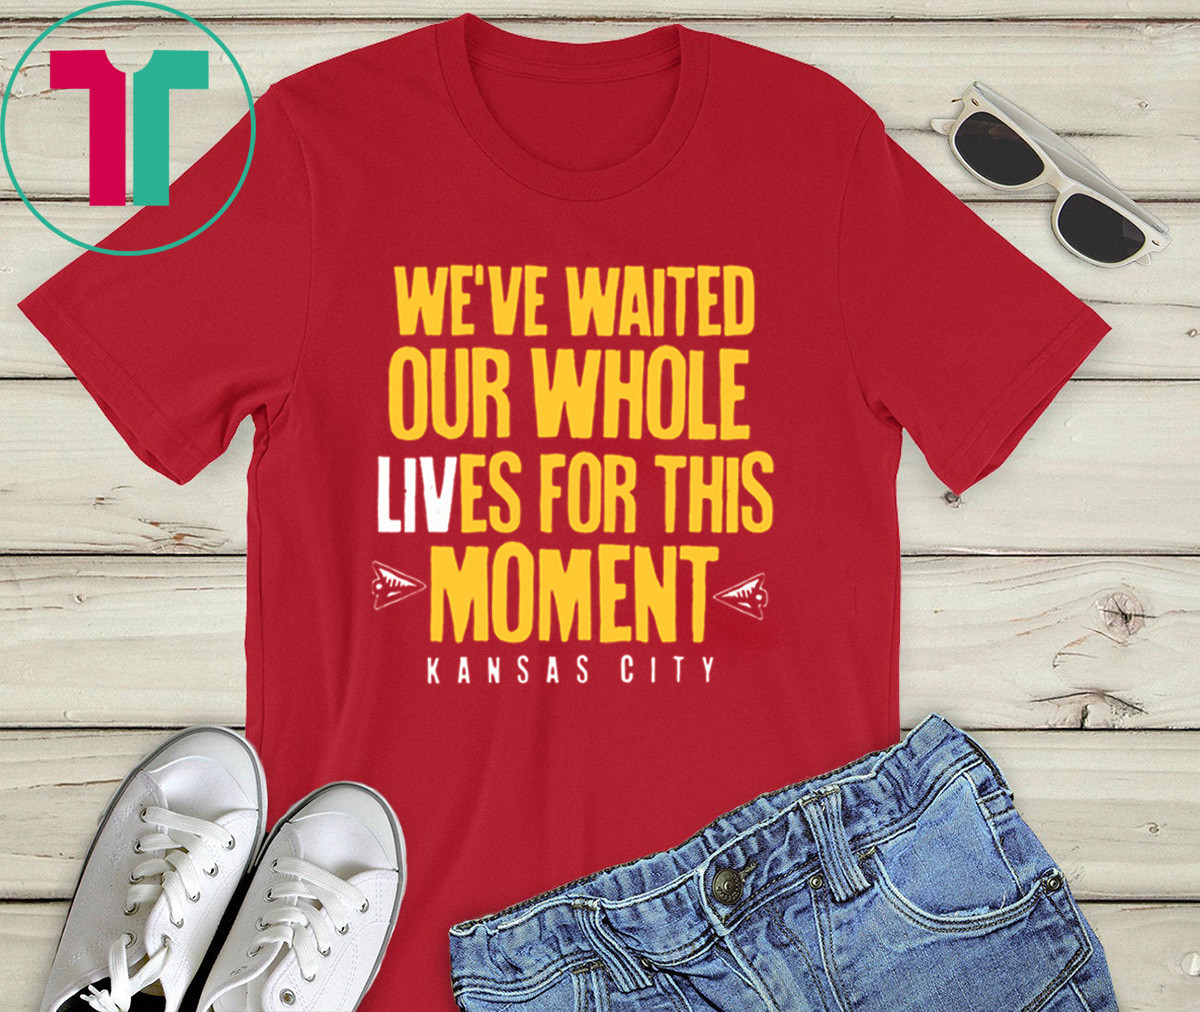 WE'VE WAITED OUR WHOLE LIVES FOR THIS MOMENT TEE SHIRT Kansas City Chiefs Super Bowl LIV Champions